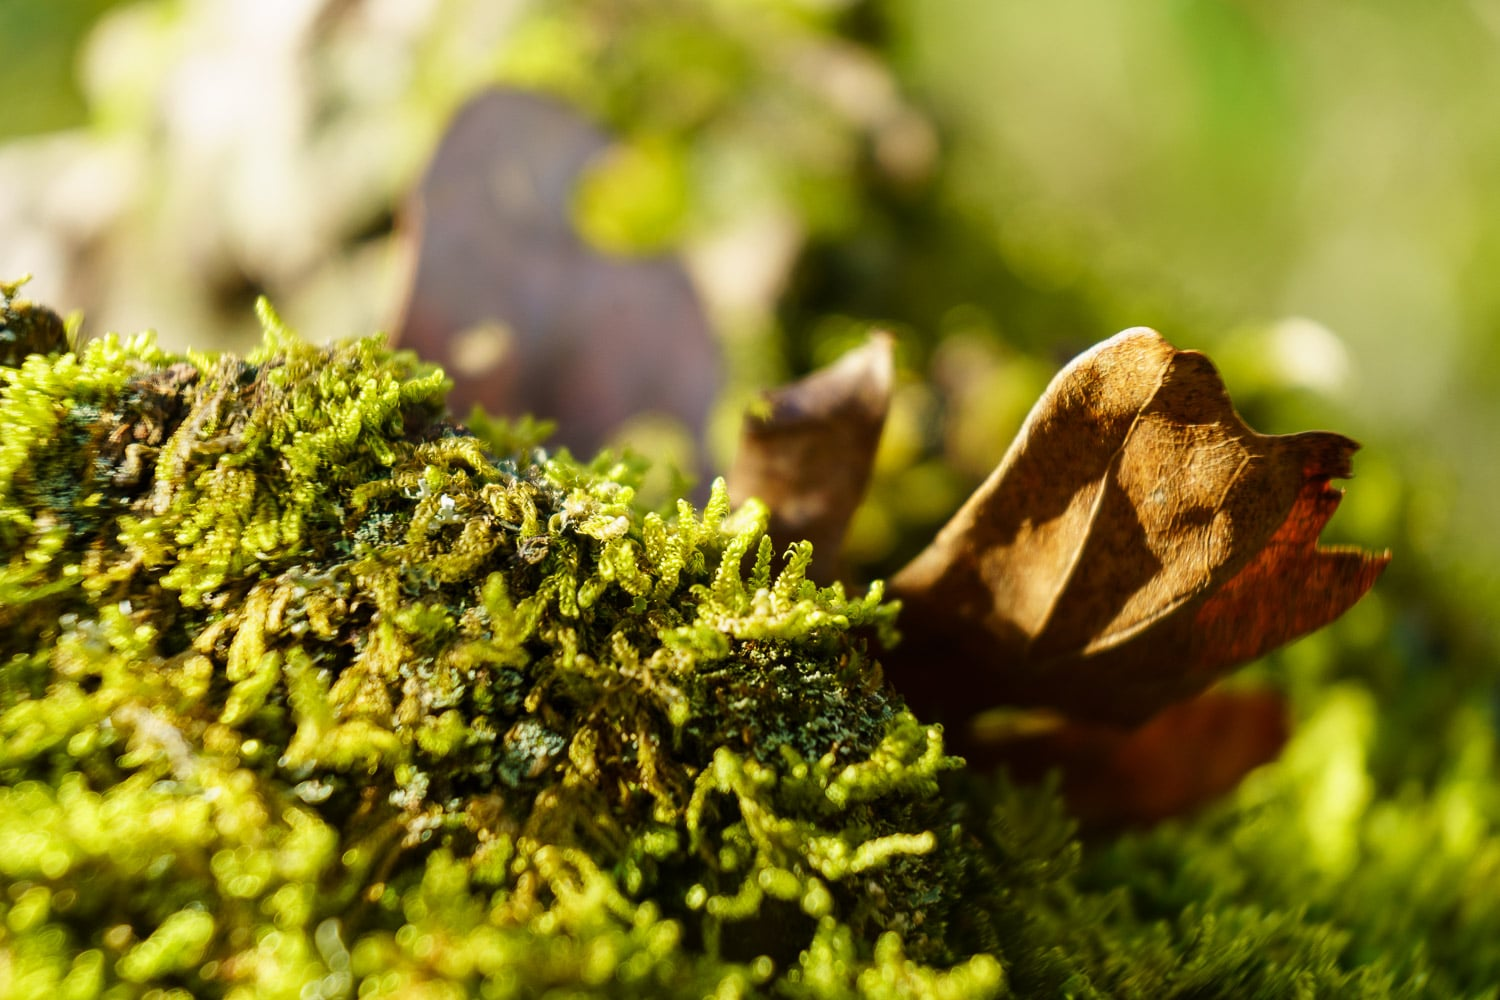 A macro photo of a leaf and some moss.